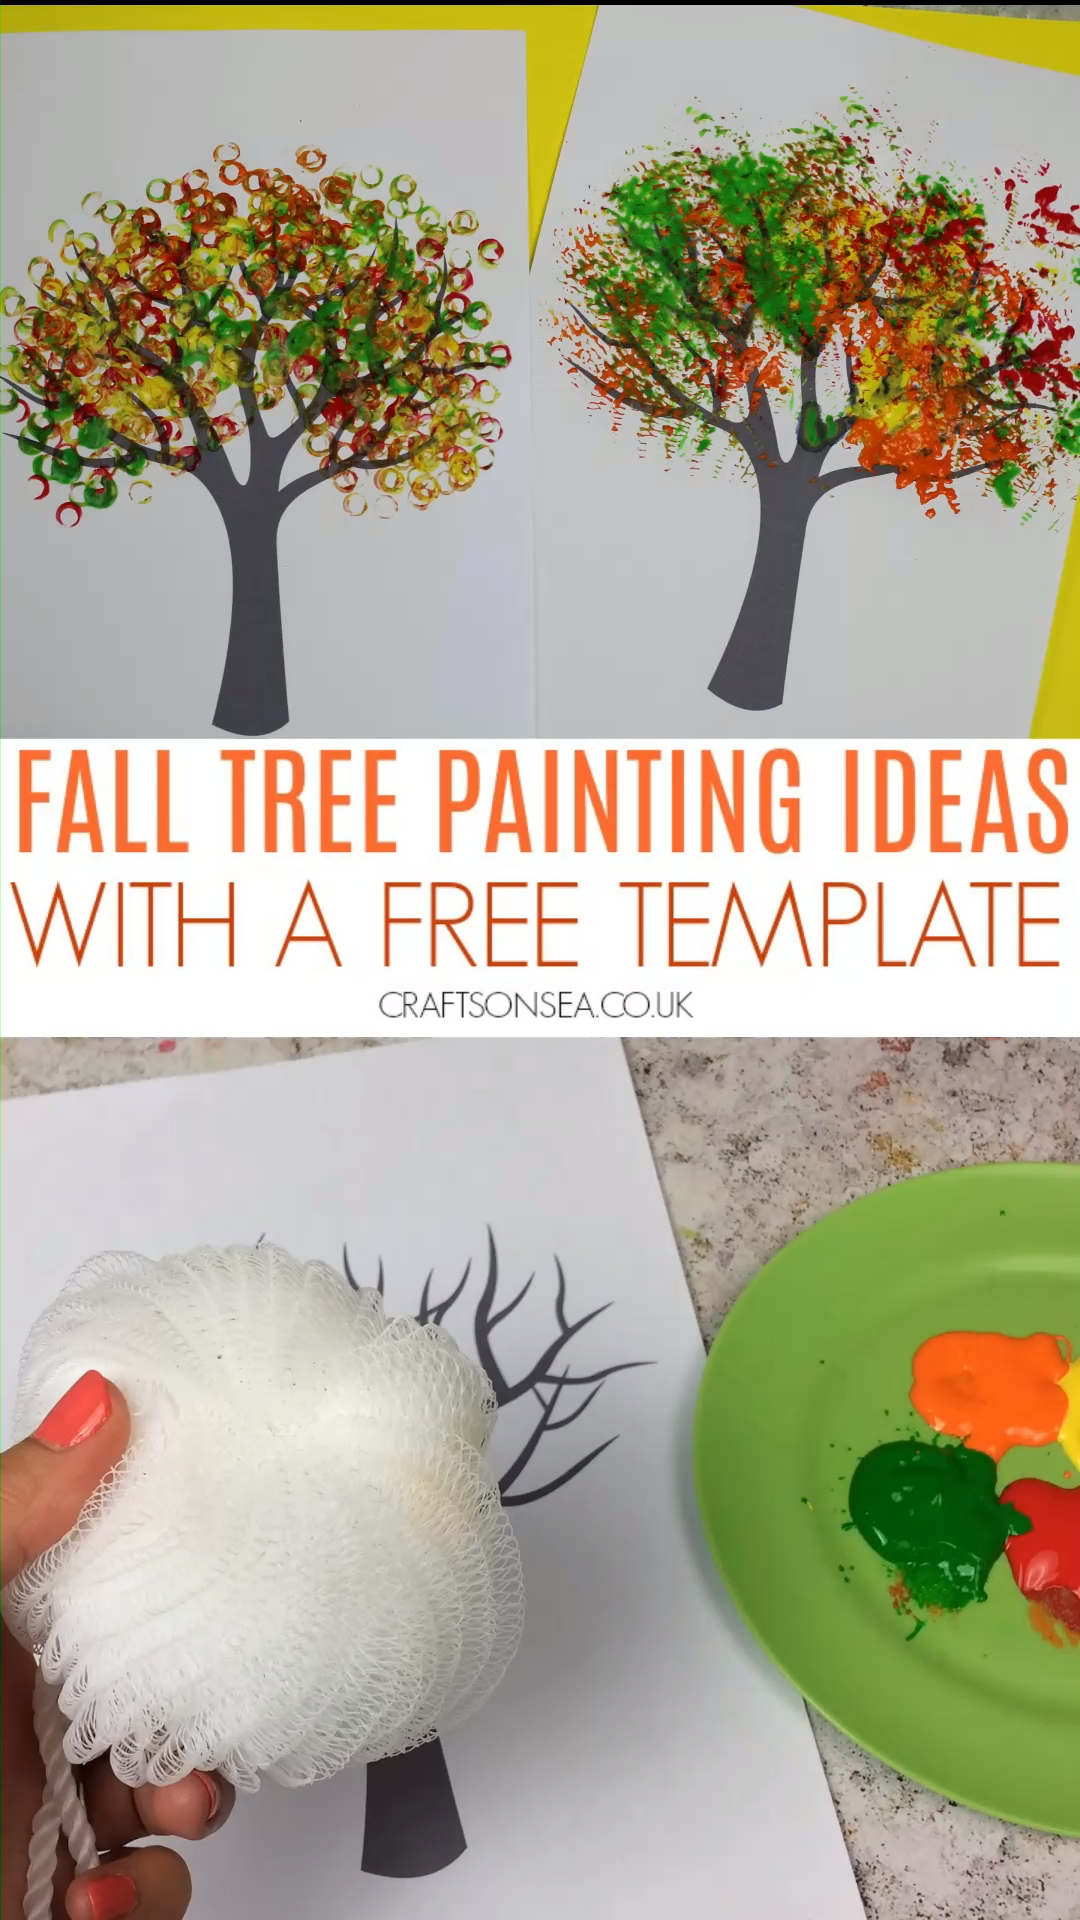 Fall Tree Painting Ideas With A Free Template #preschoolers